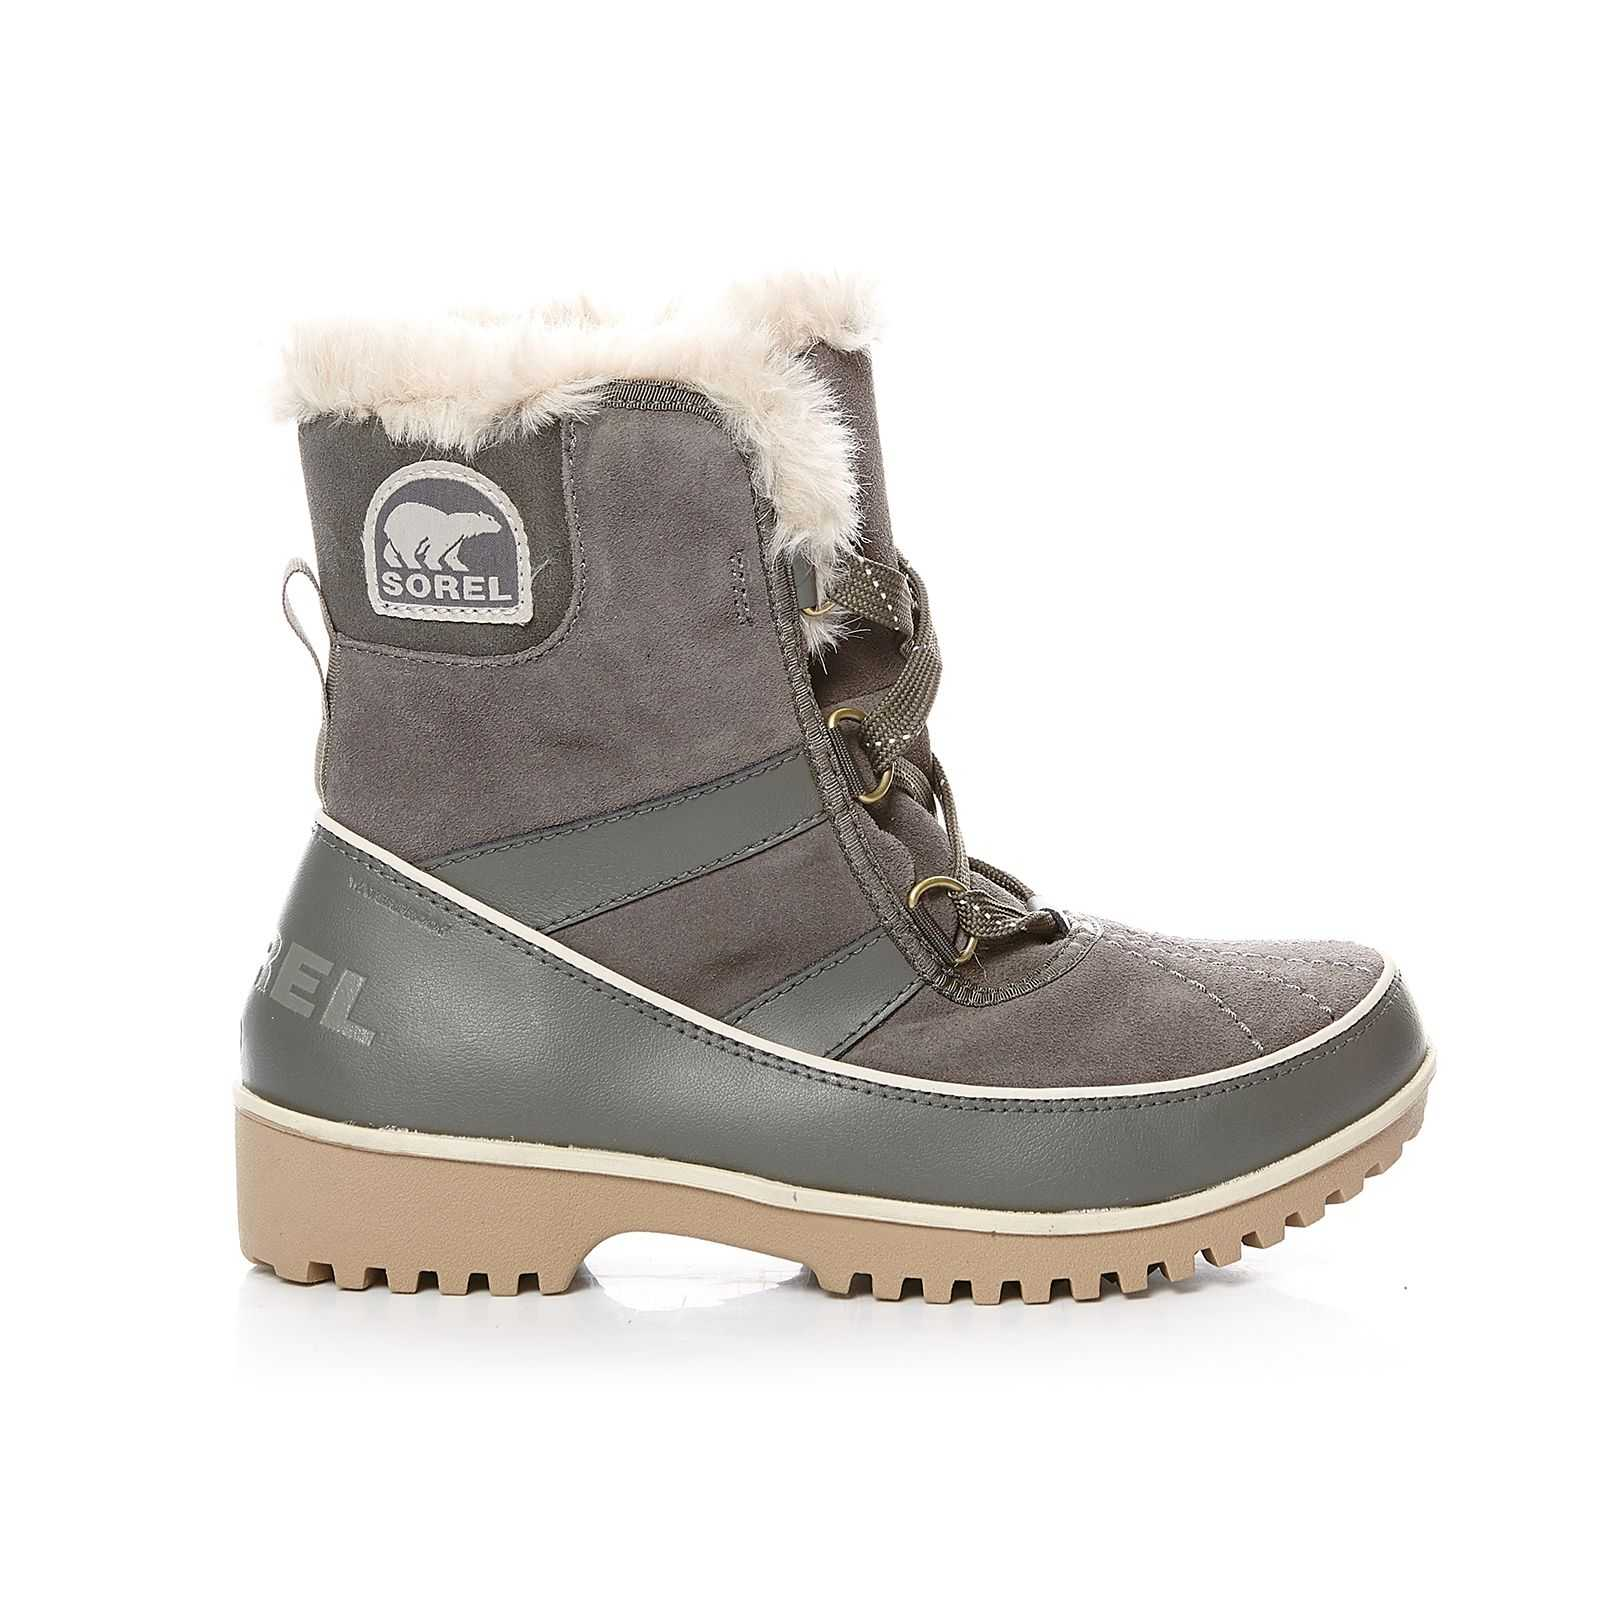 How to use a Sorel coupon Sorel footwear has a sale section that is regularly stocked with footwear going out of season. The available discounts may be as much as 50% off retail value. When they are looking to clean out stock, they are known to offer additional discounts for a very short time.